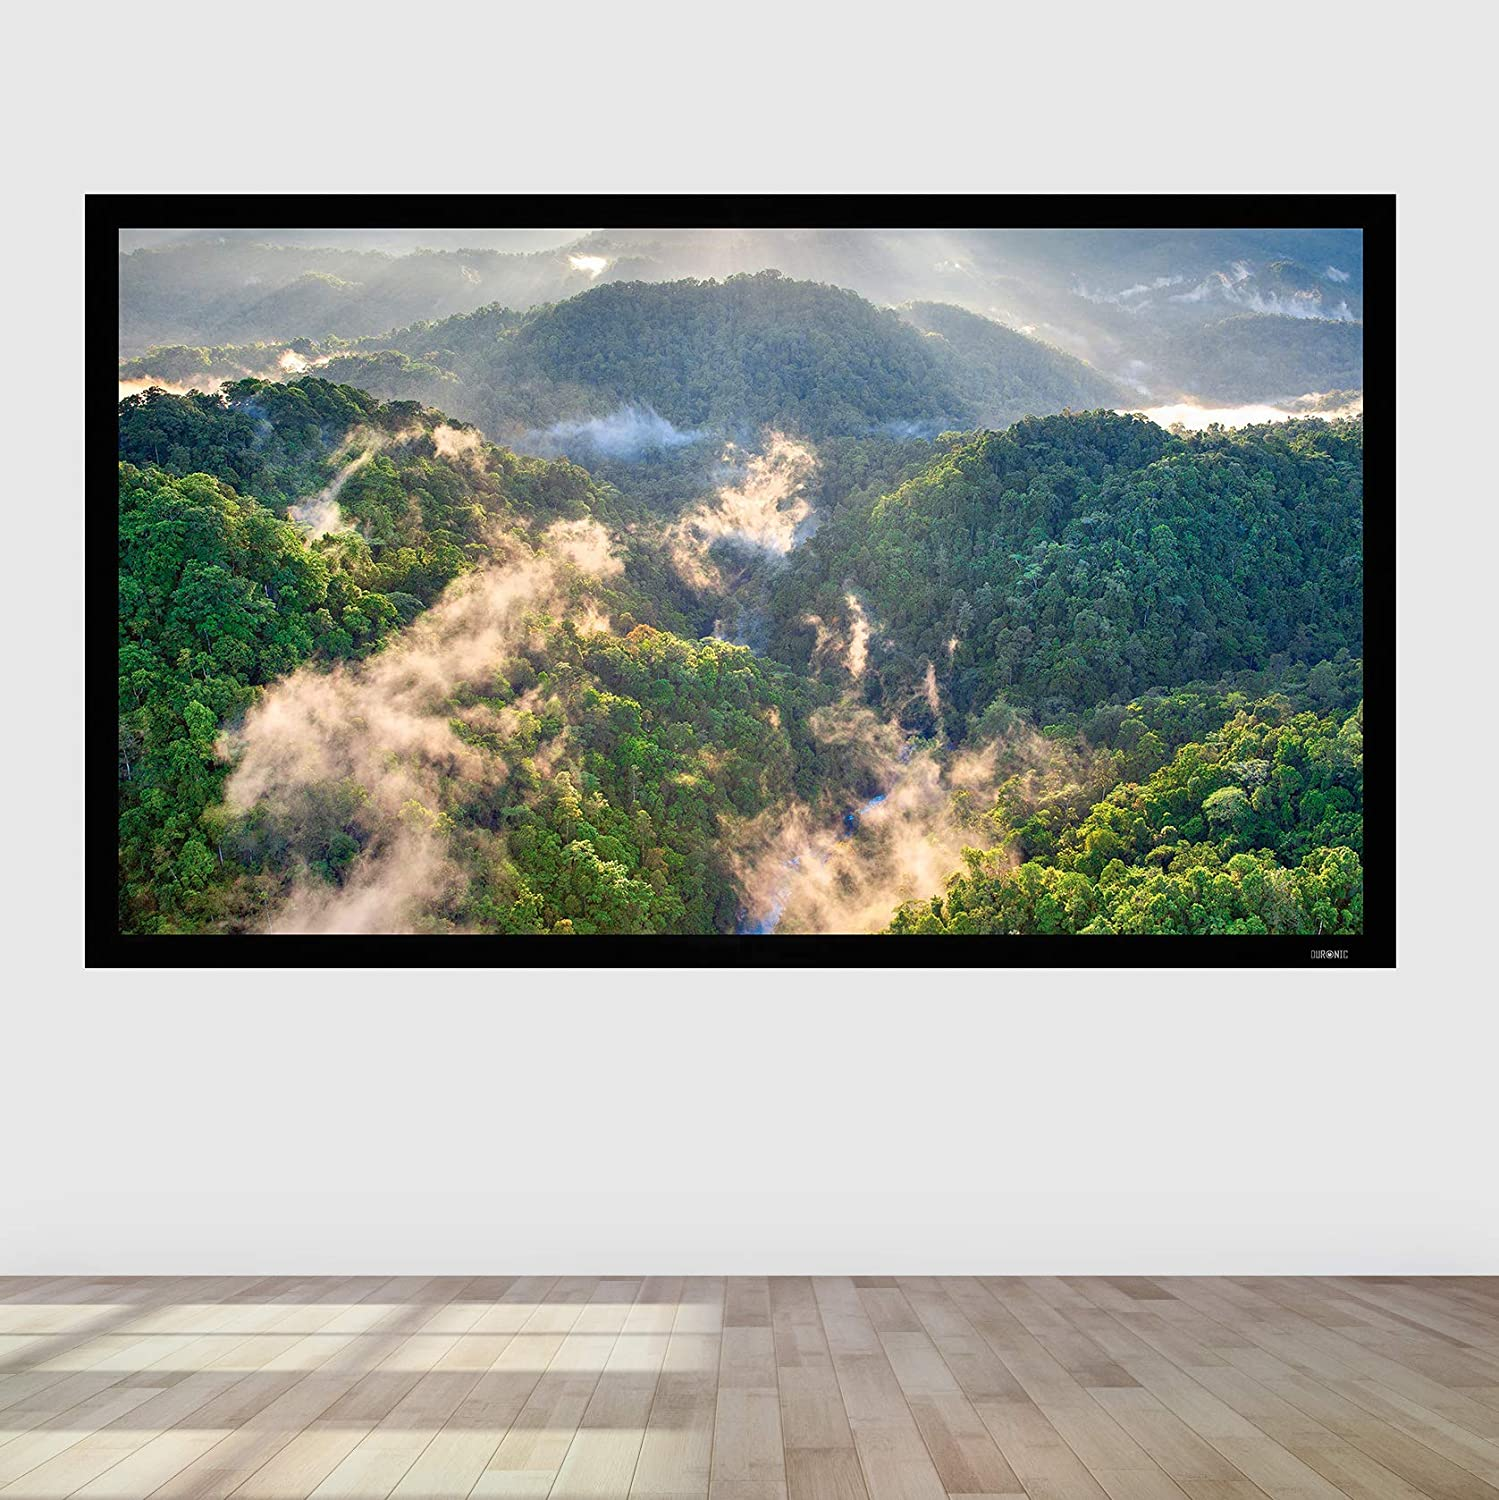 Office/… 133-Inch Fixed Frame Projection Screen 16:9 Ratio Ideal for Home Theatre Classroom Wall Mountable HD High Definition Image Duronic Projector Screen FFPS133//169 +1 Gain